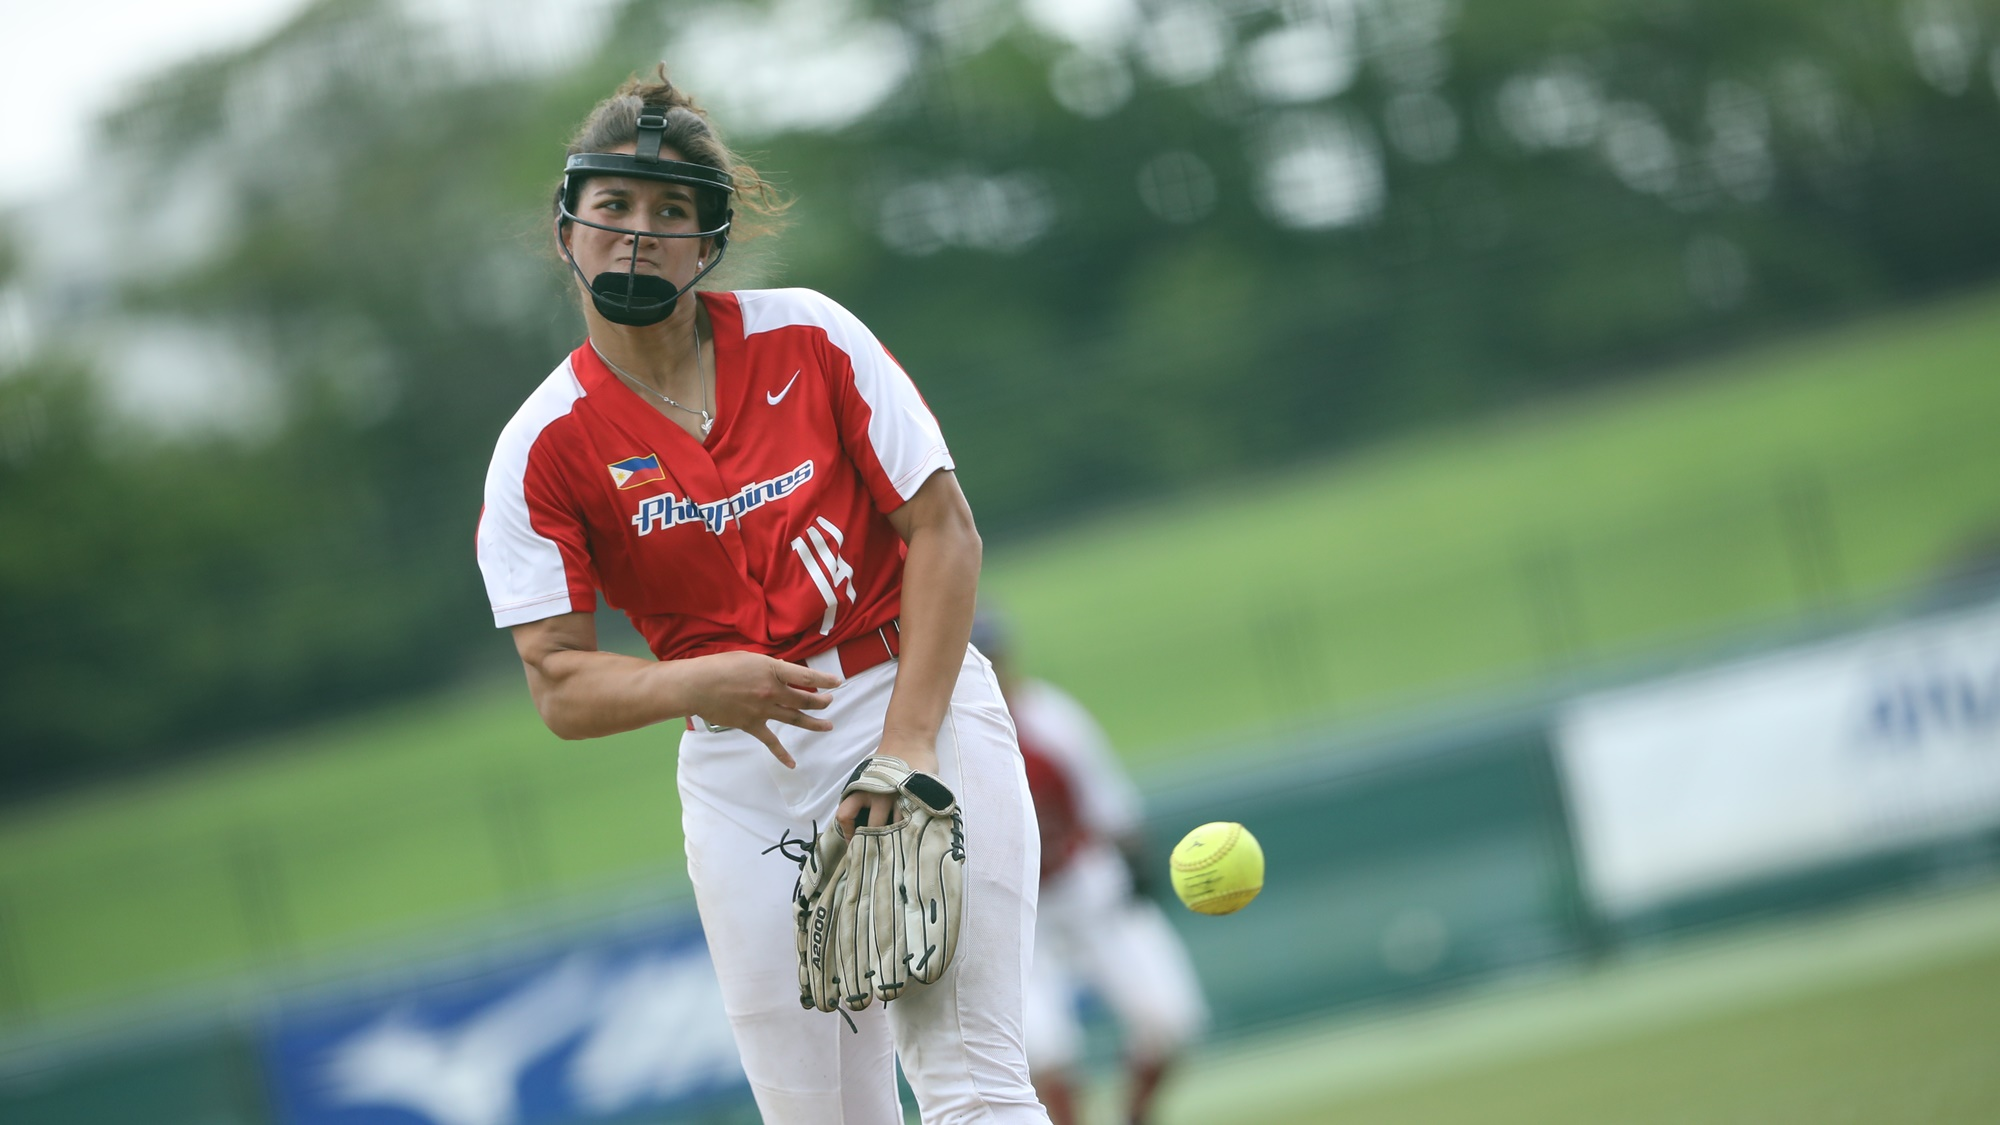 Reliever Sierra Lange didn't allow any run in two innings of work